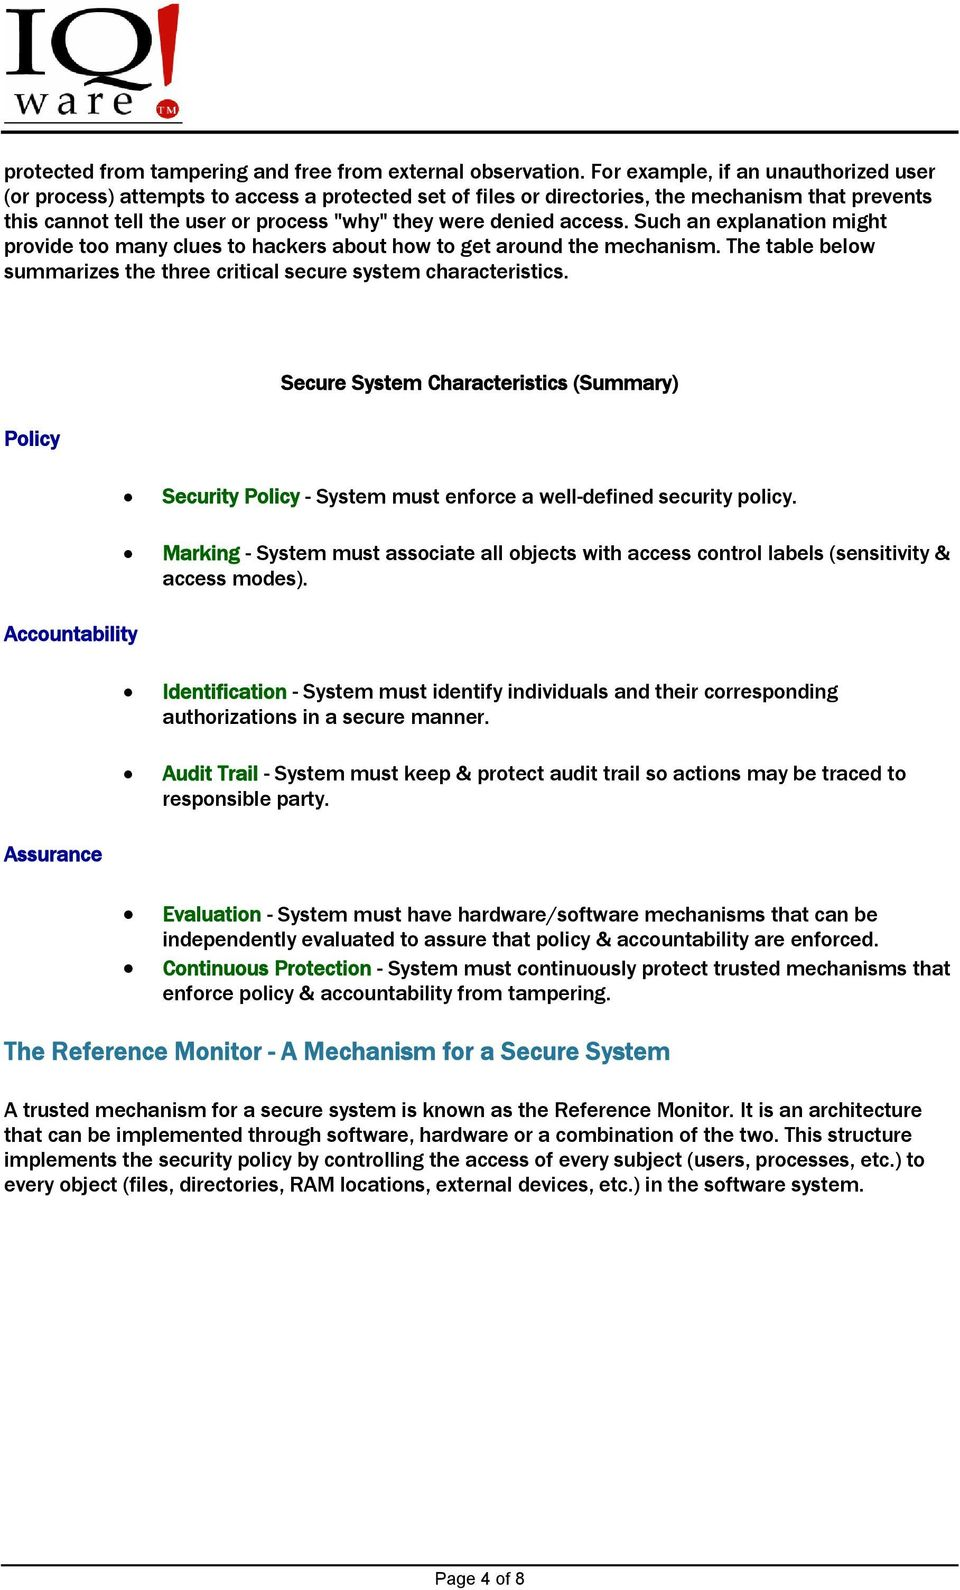 access. Such an explanation might provide too many clues to hackers about how to get around the mechanism. The table below summarizes the three critical secure system characteristics.